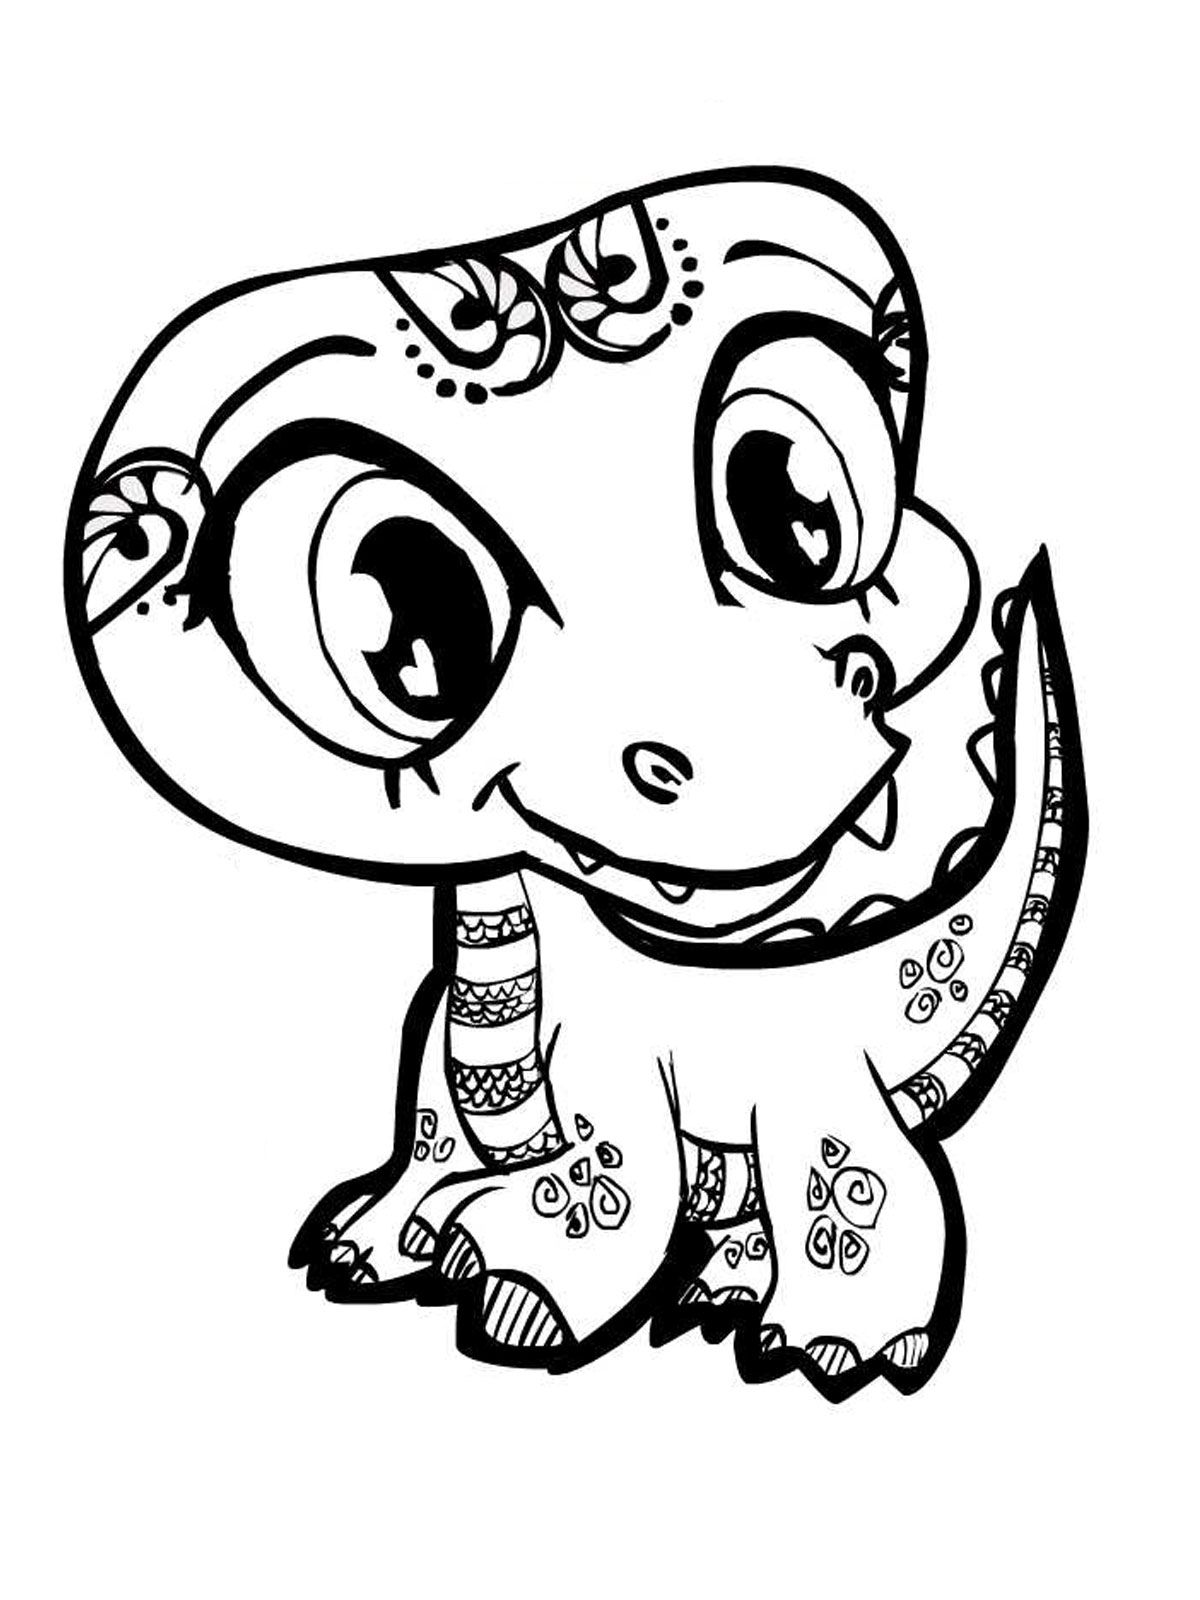 kids coloring pages Cute Smiling Alligator Kids Coloring